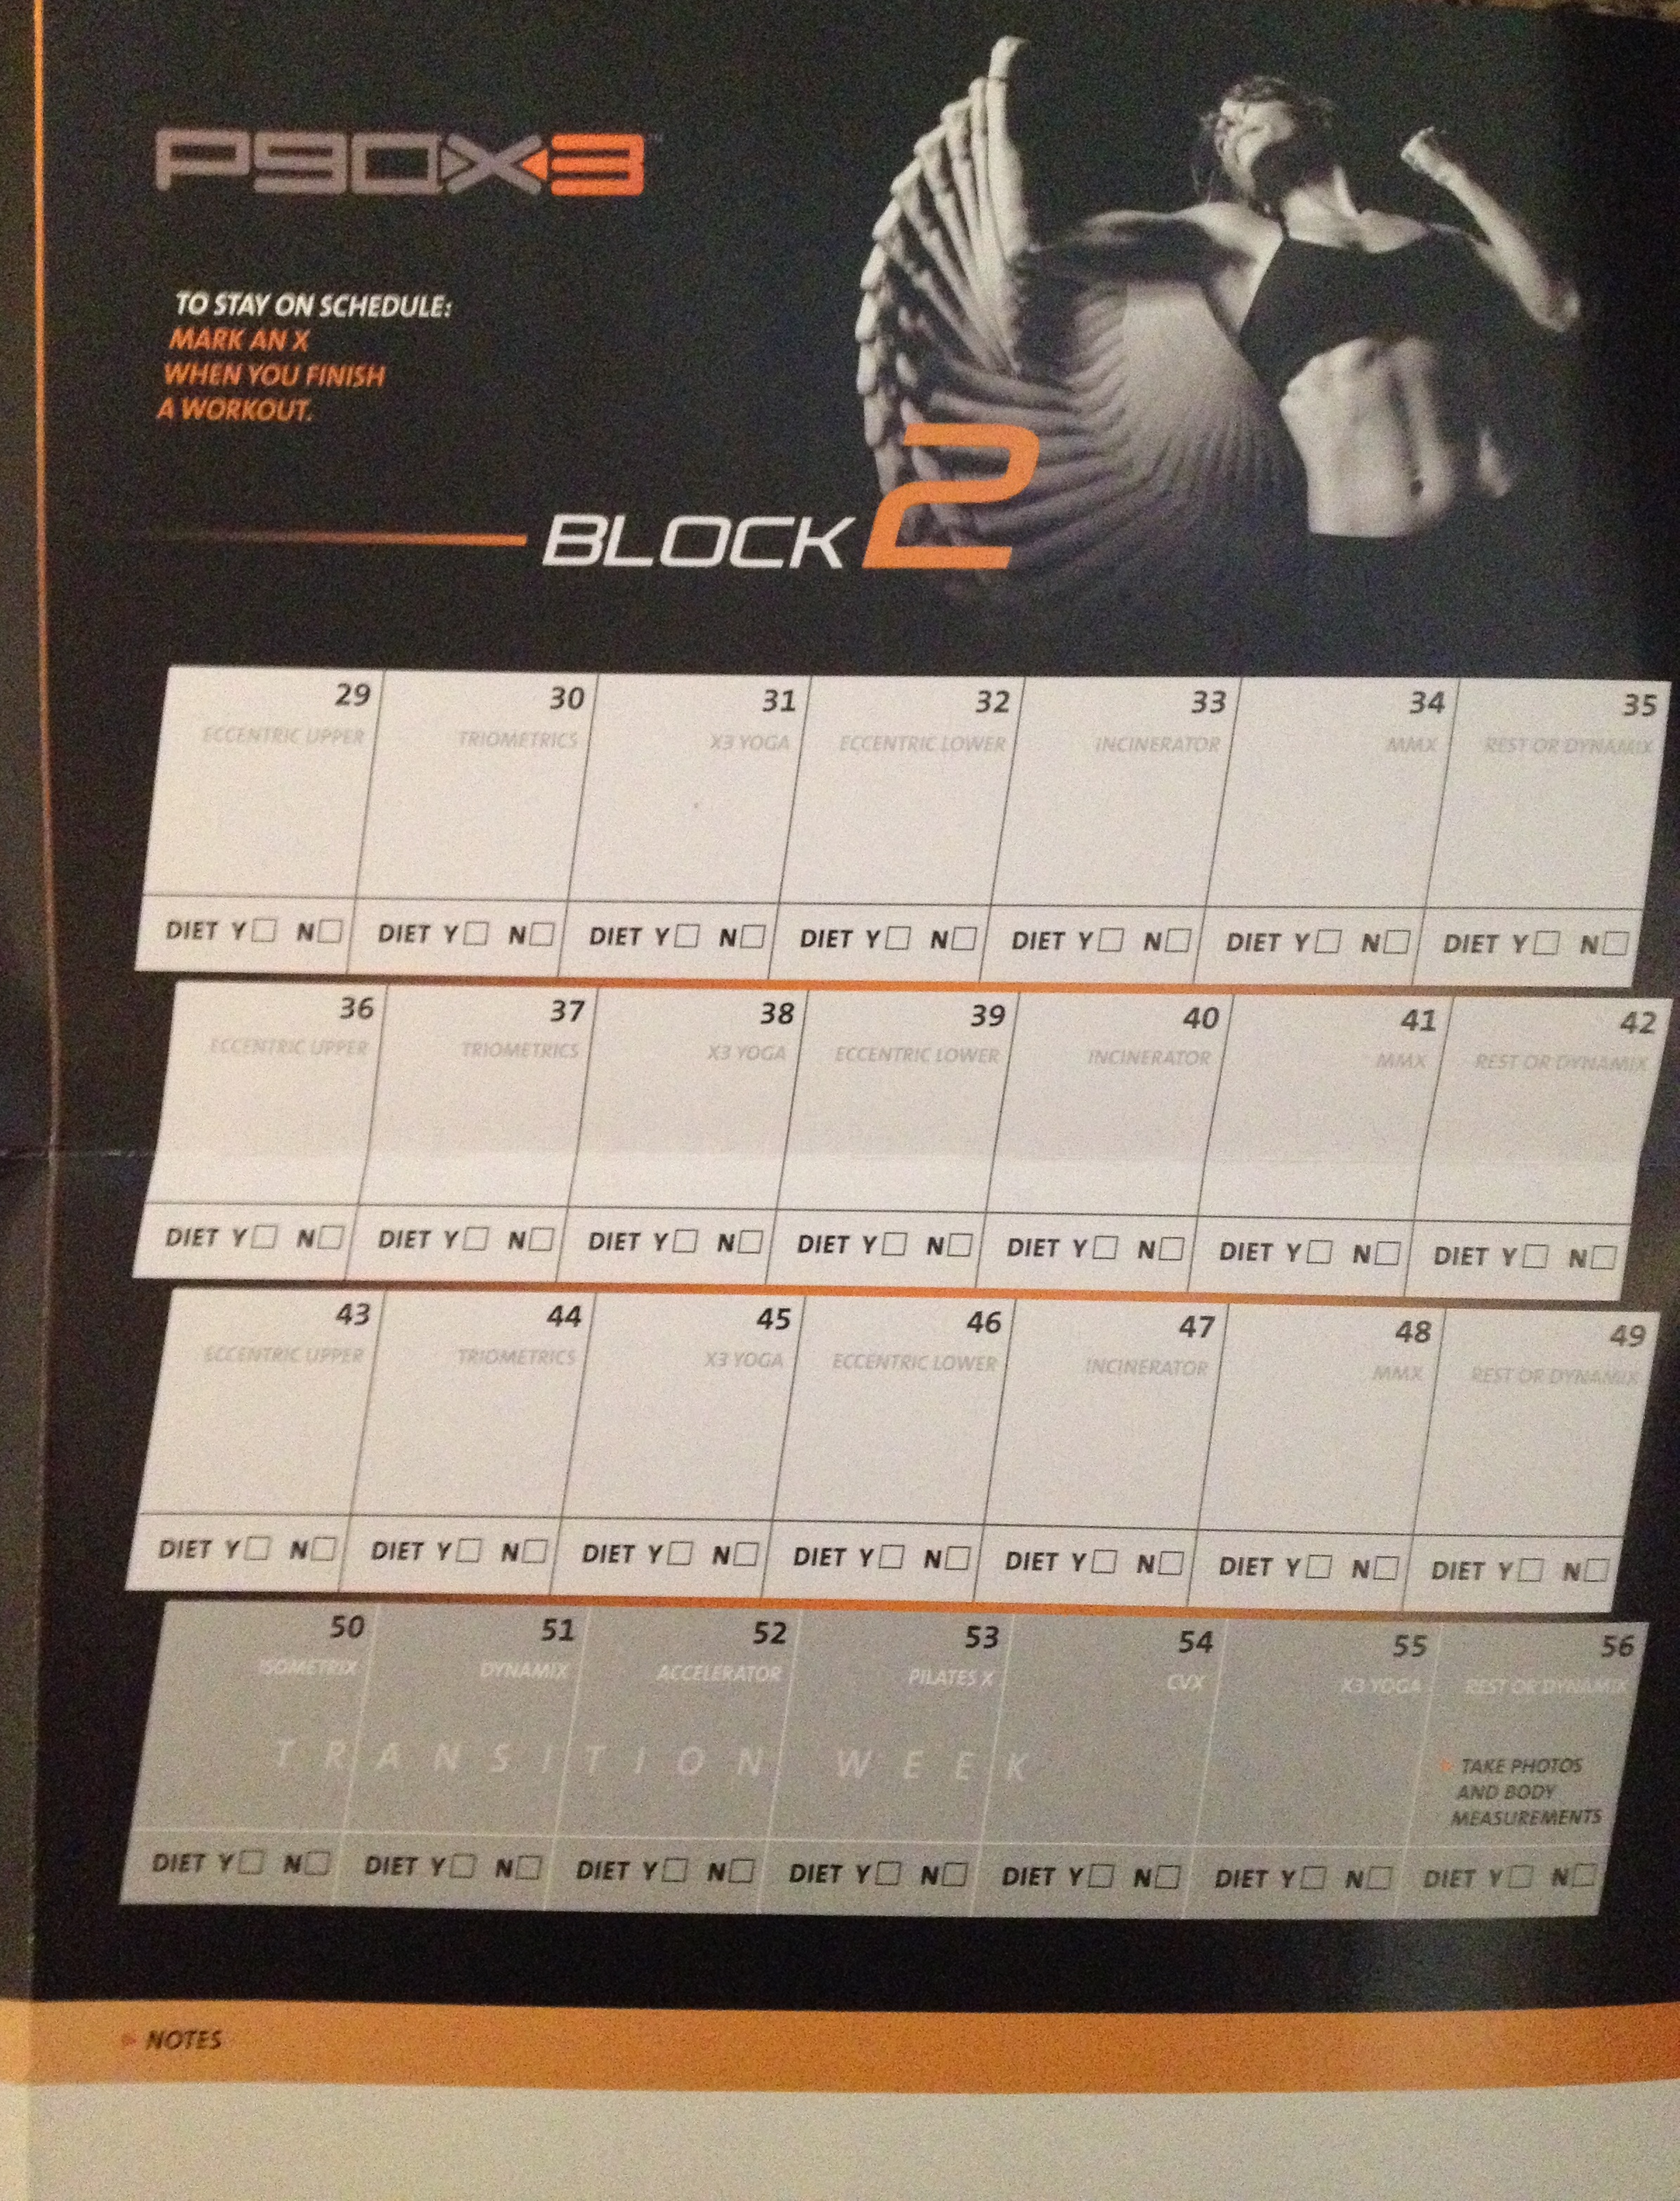 P90x3 Elite Worksheets | Printable Worksheets and Activities for